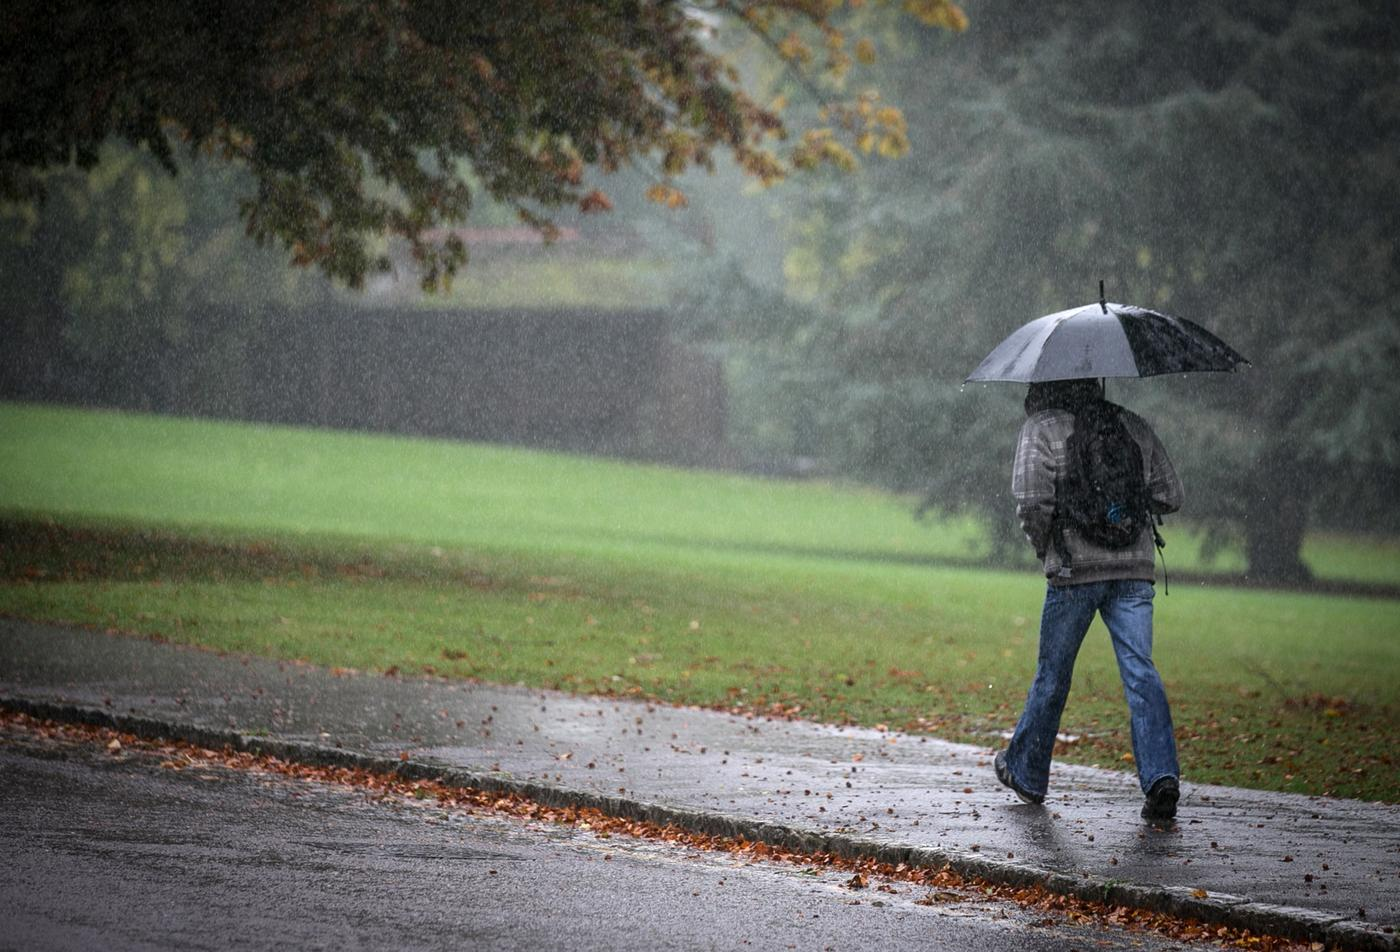 Do you live in the wettest place in the UK?